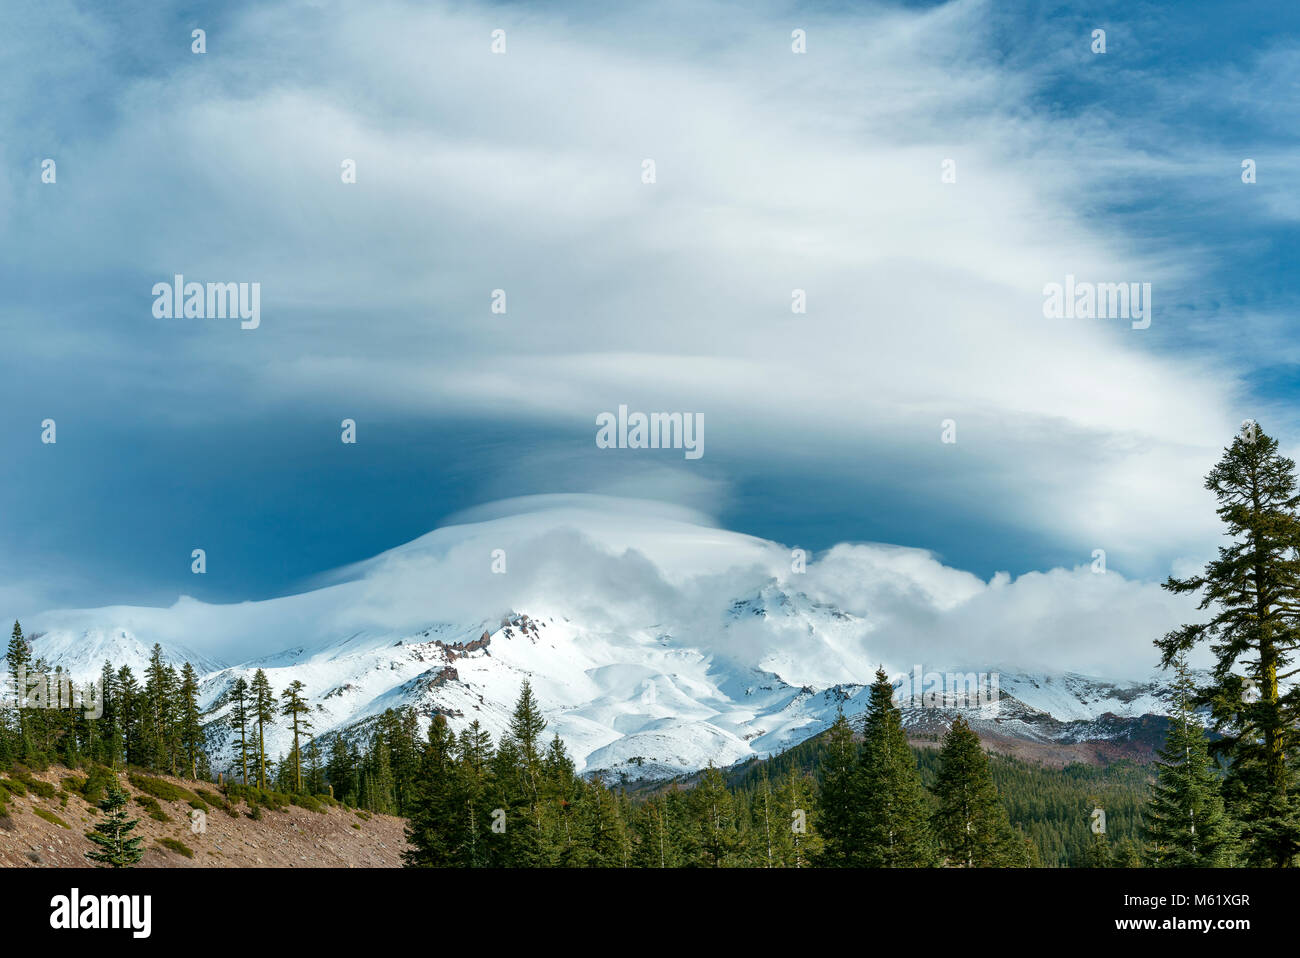 Lenticular Cloud, Mount Shasta, Shasta-Trinity National Forest, California - Stock Image